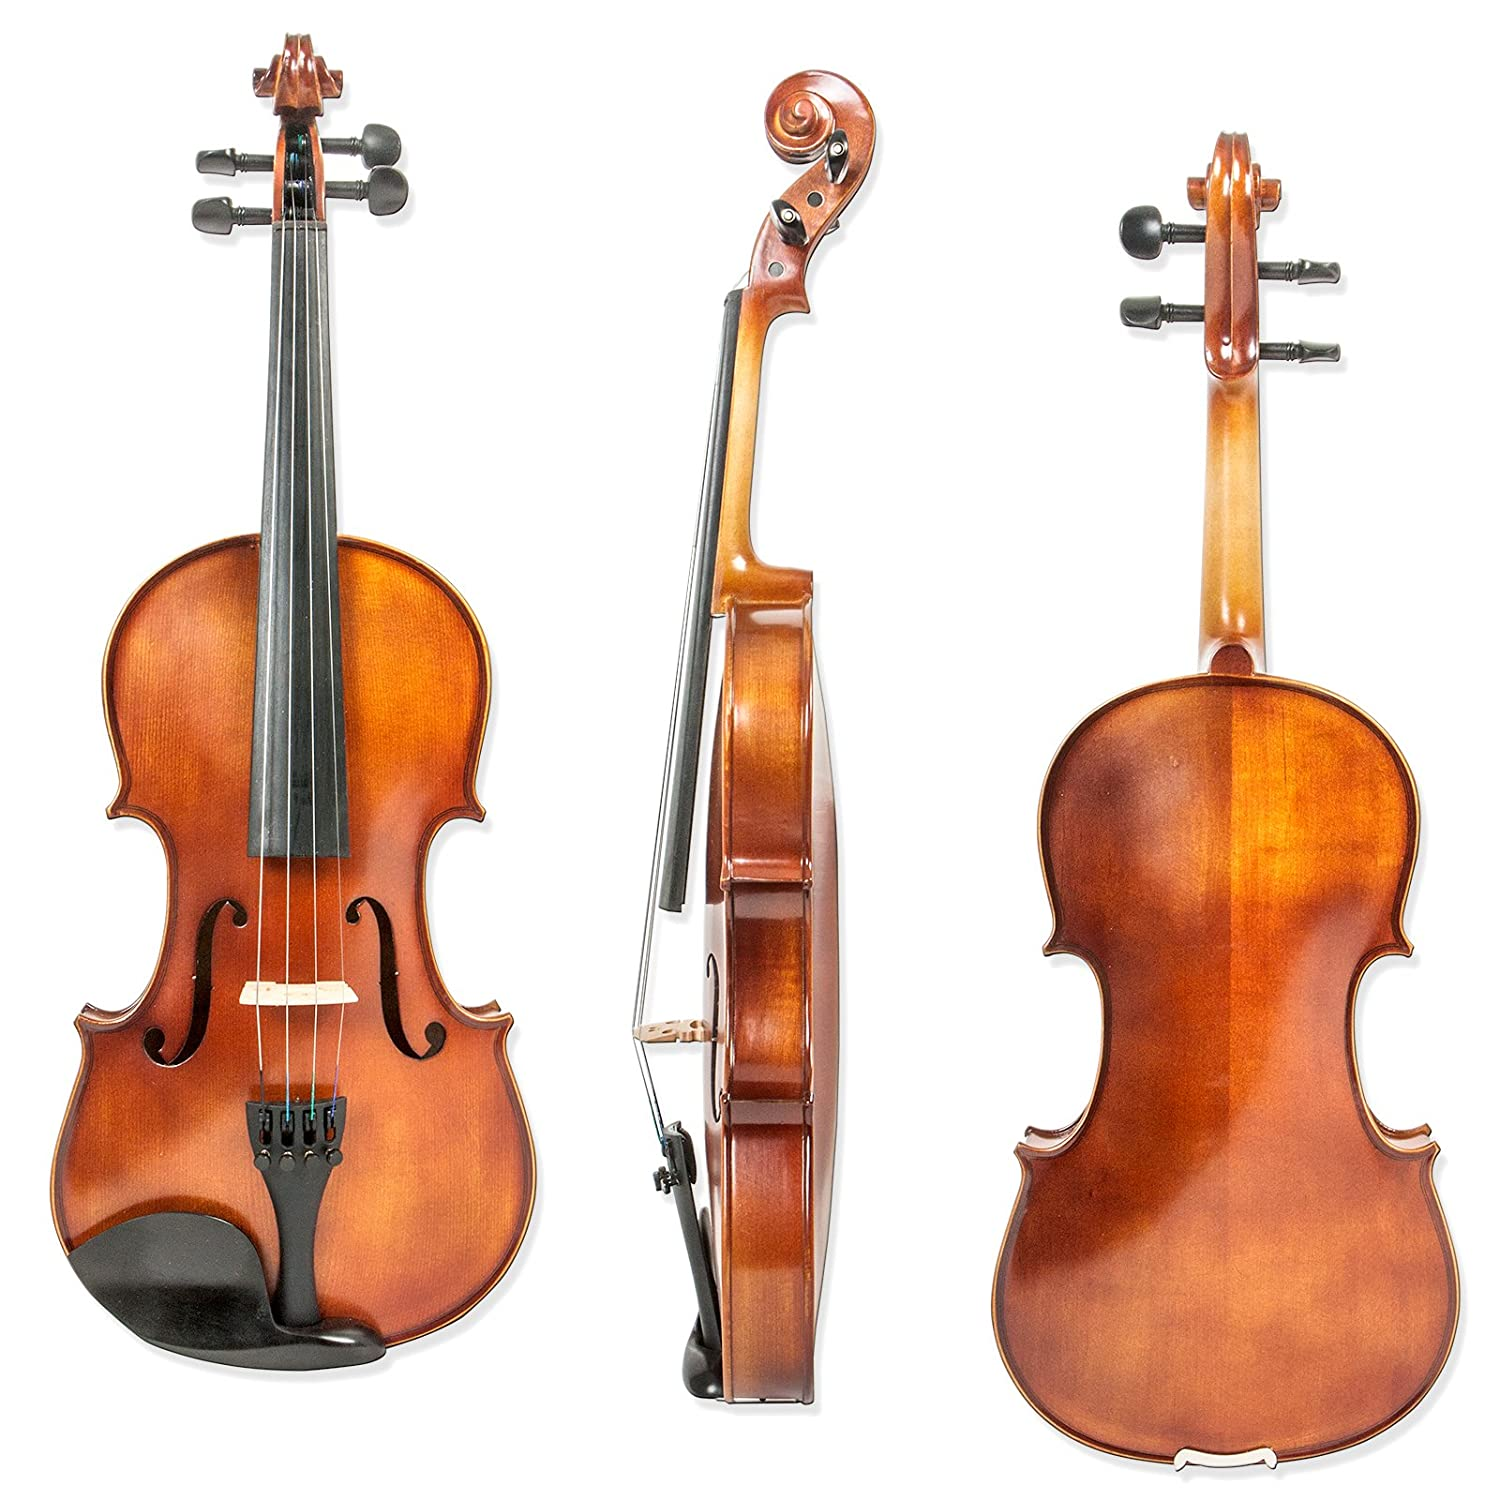 Guumuh X59 Violin 4/4 Full Size, Ebony Fingerboard, Pegs, Chinrest, Maple Spruce Solidwood Violin with Two Rosins, Bow and Case,